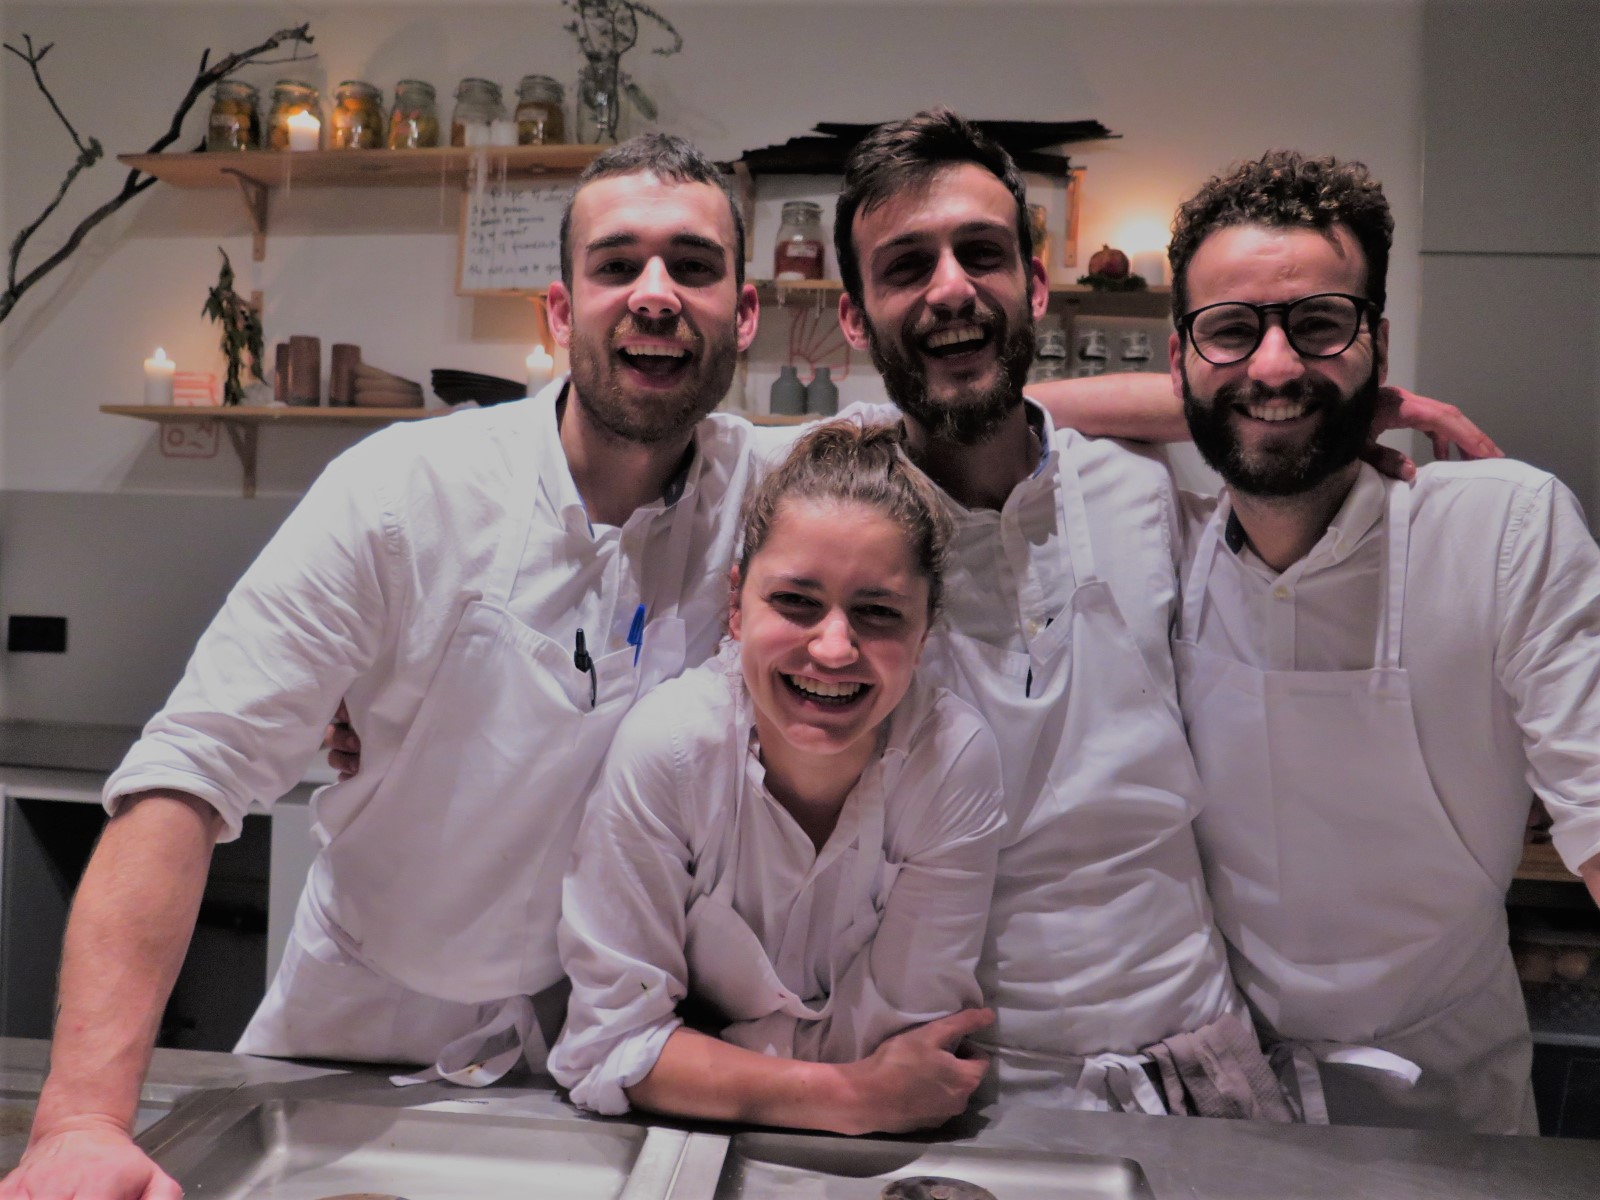 Os 4 jovens chefes do ONA AT THE MUSEUM: Iñaki Bolumburu, Mariana Schmidt, Edgar Bettencourt e Micael Duarte